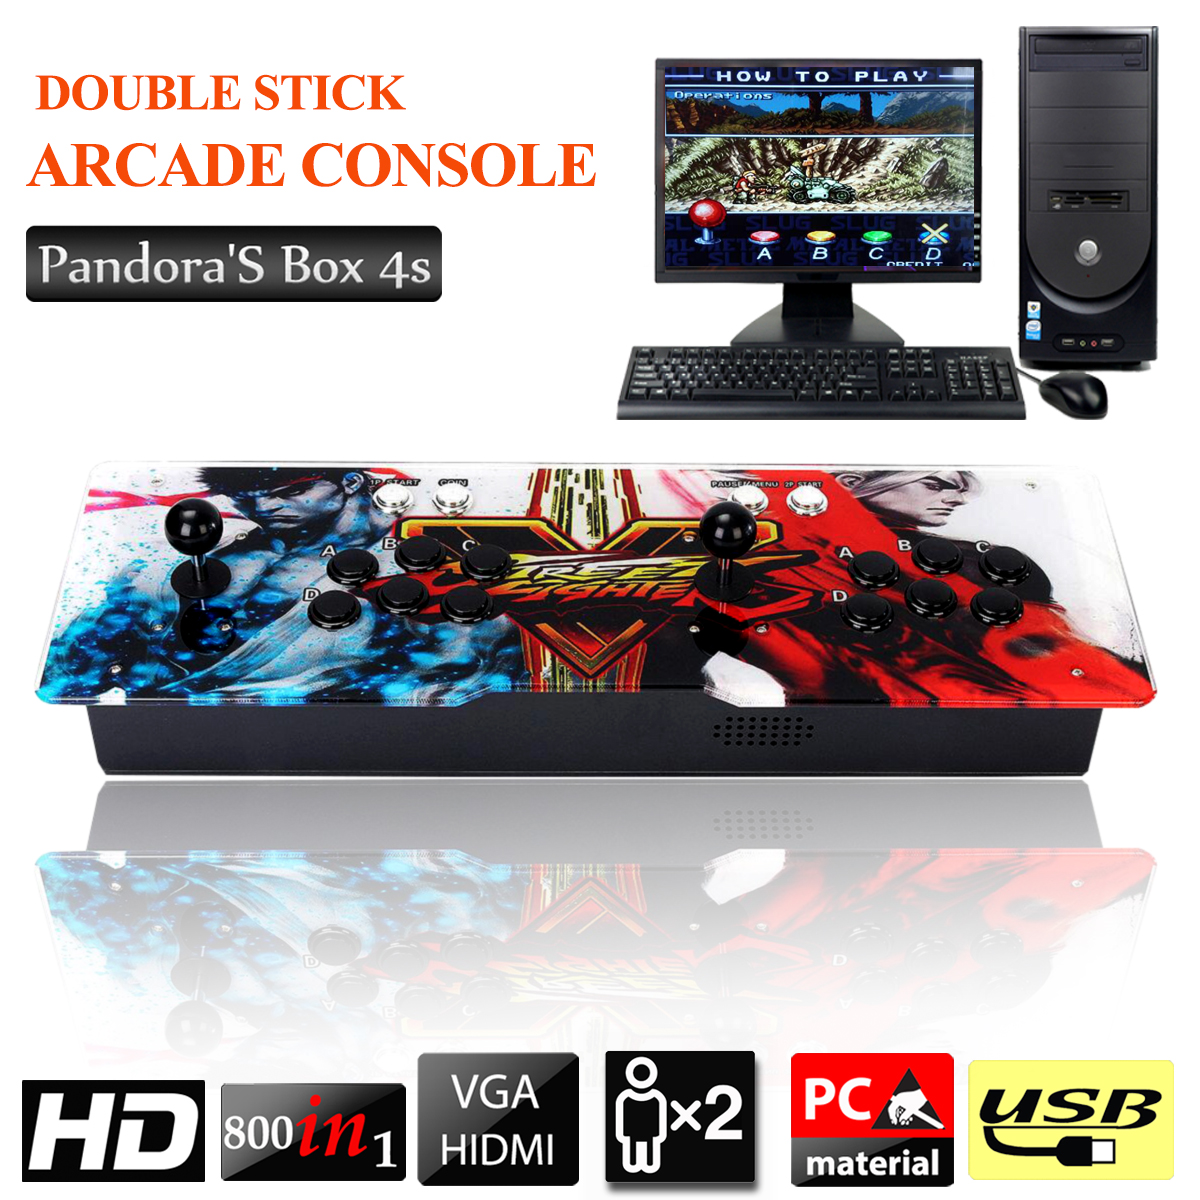 PandoraBox 4s 800 Arcade Video Games Jamma Console 2 Player Joystick Button